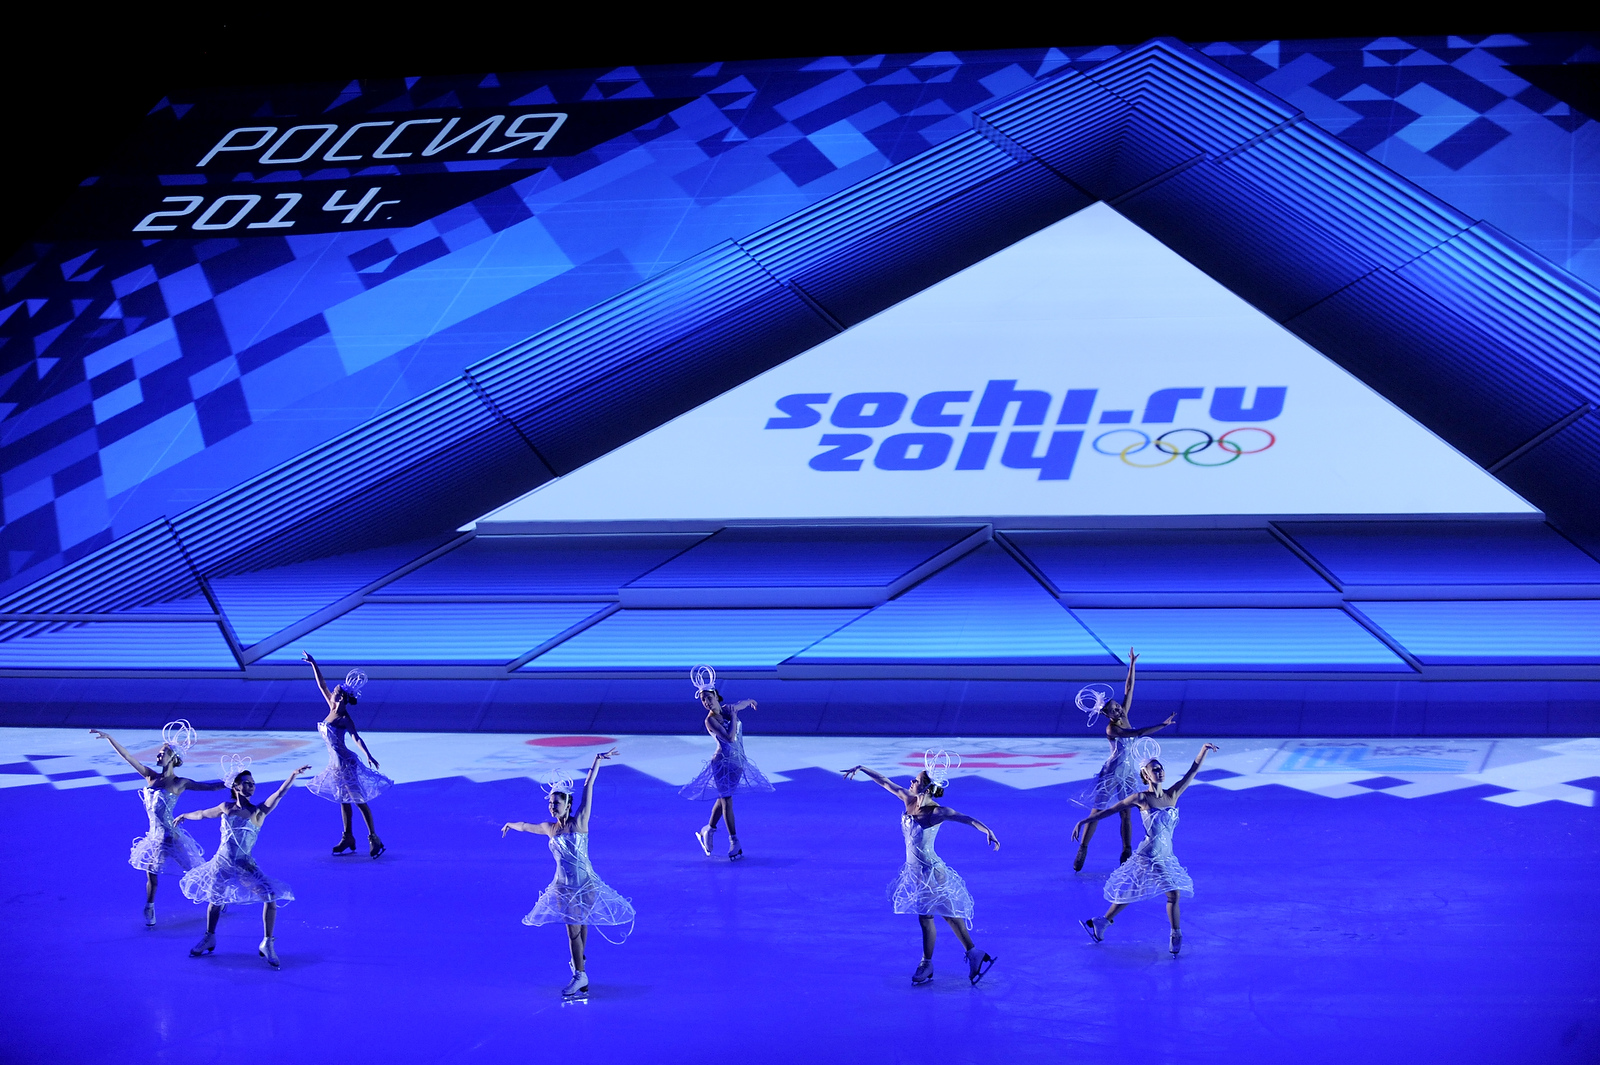 The tickets sale for the 2014 Sochi Olympics is in full swing. Source: Mikhail Mordasov